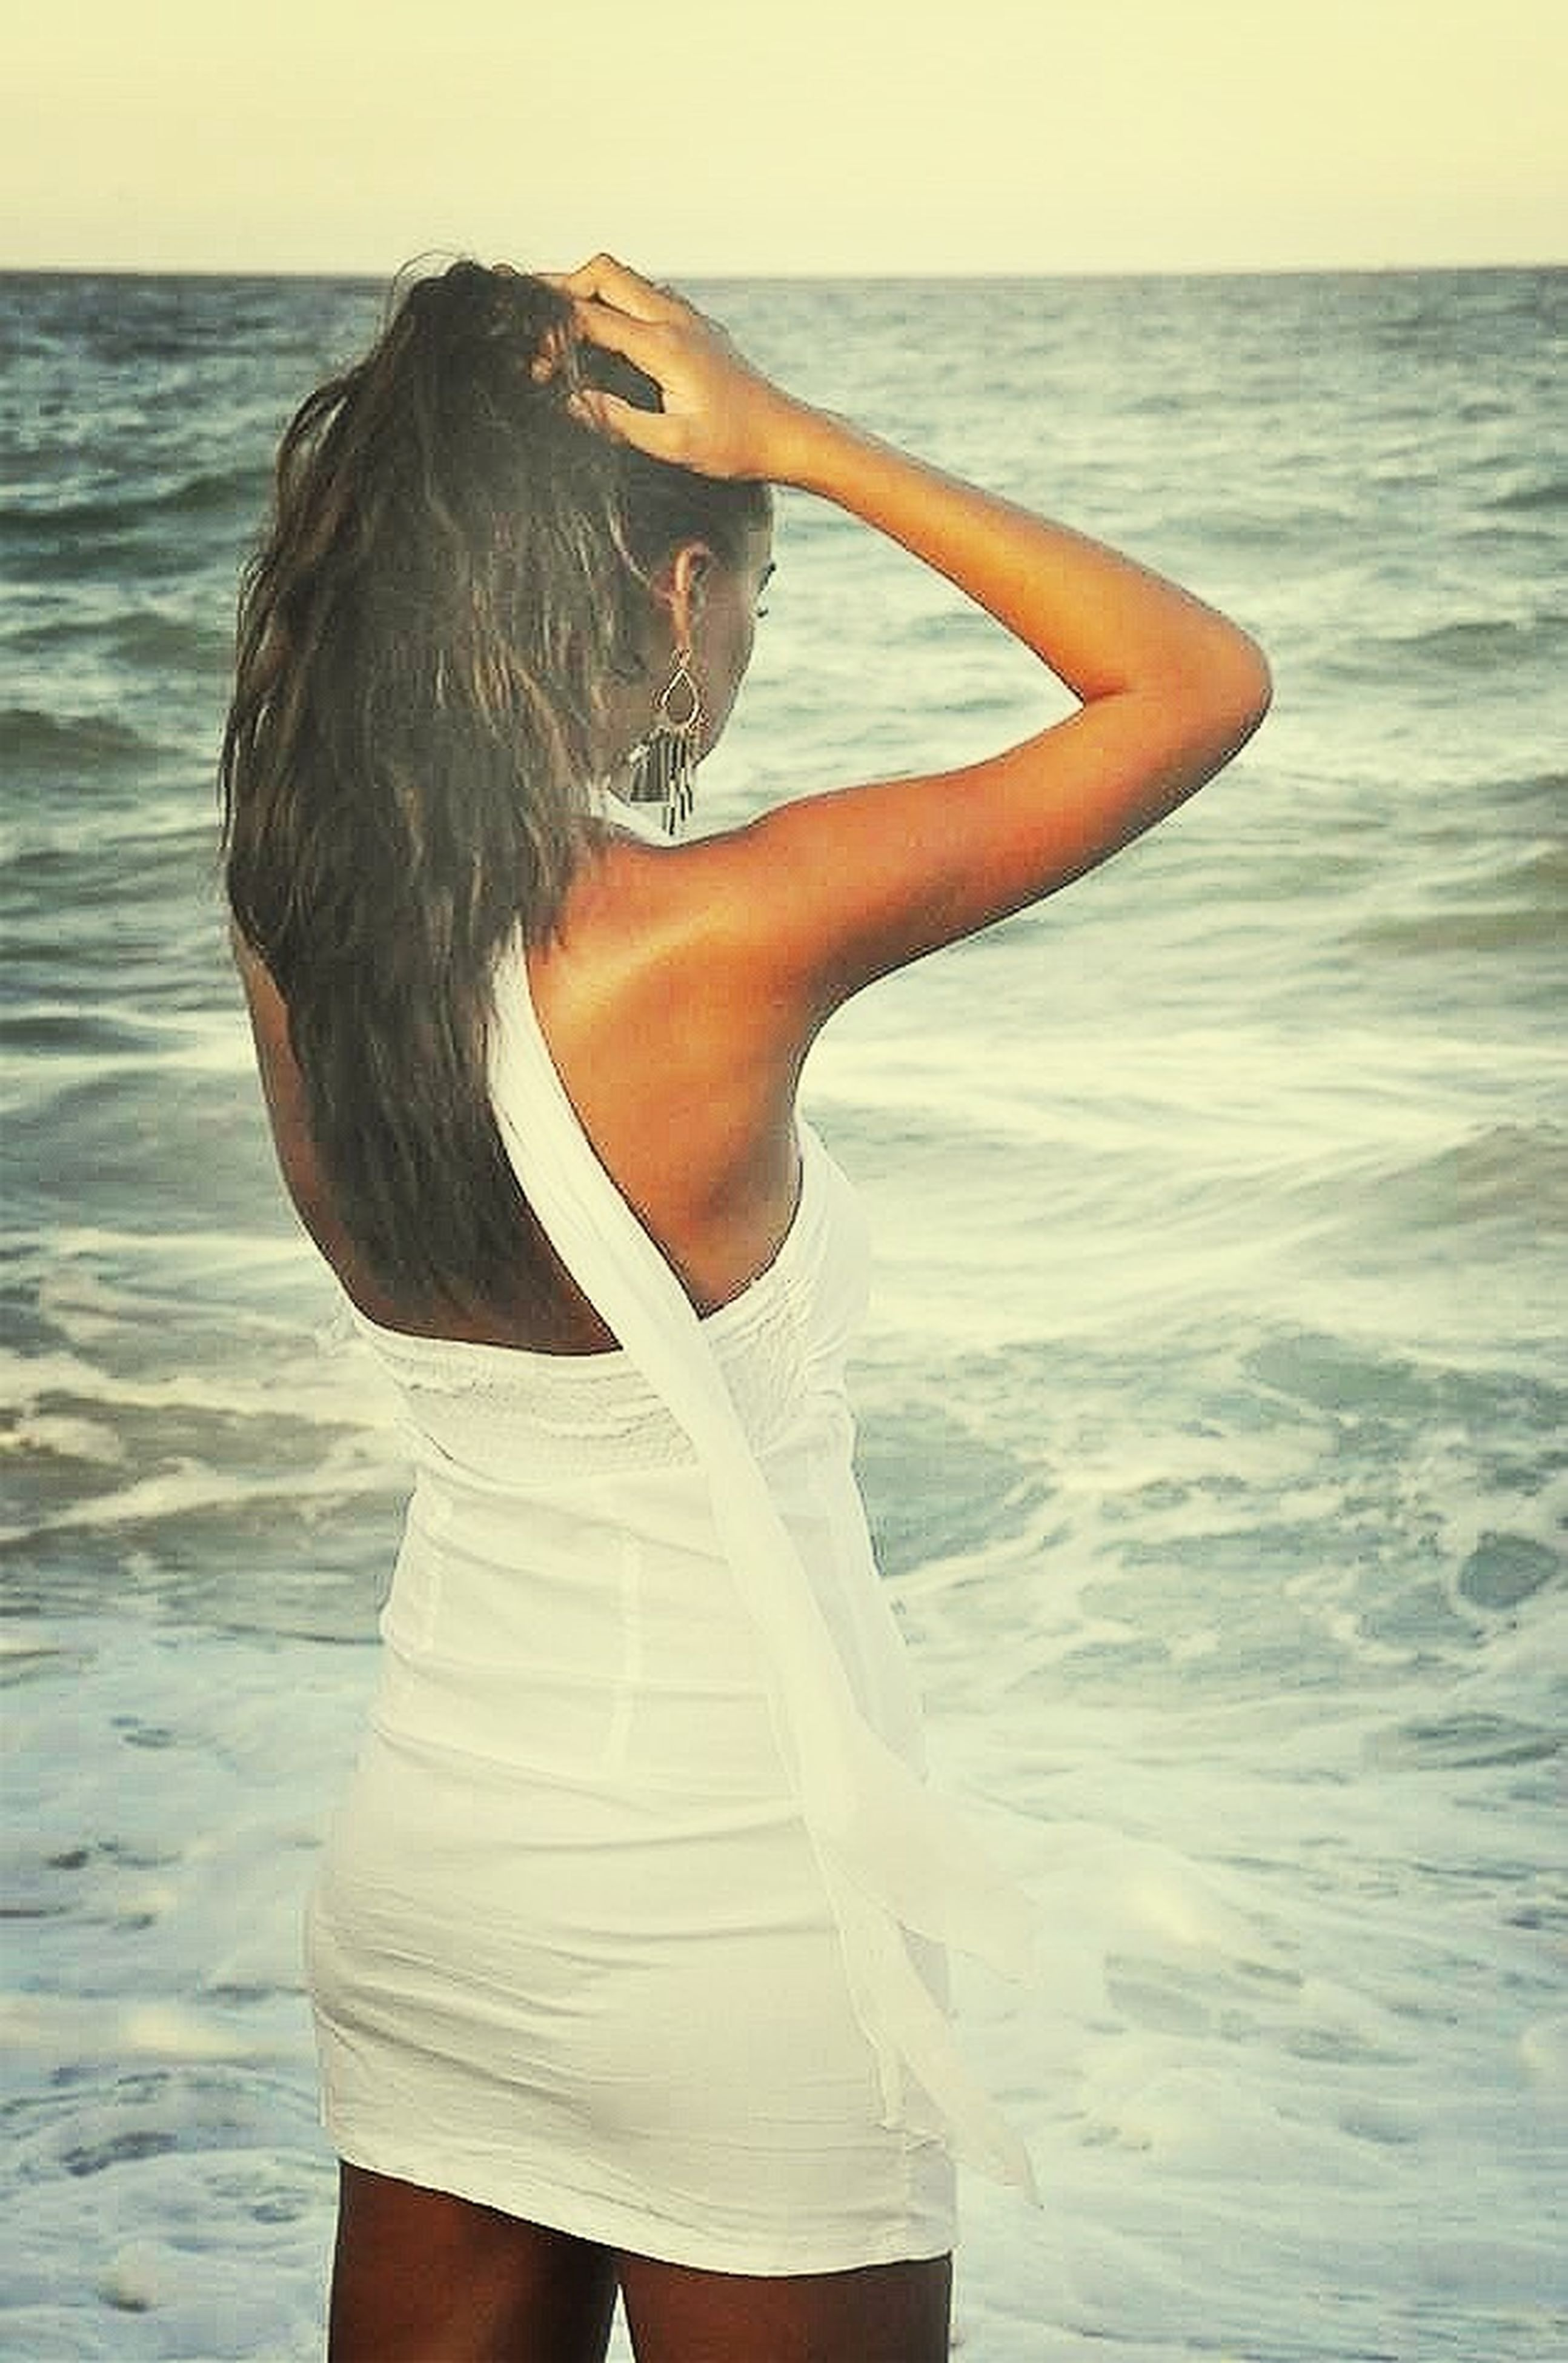 water, sea, rear view, lifestyles, leisure activity, standing, horizon over water, person, three quarter length, side view, nature, young adult, focus on foreground, beauty in nature, waist up, young women, long hair, rippled